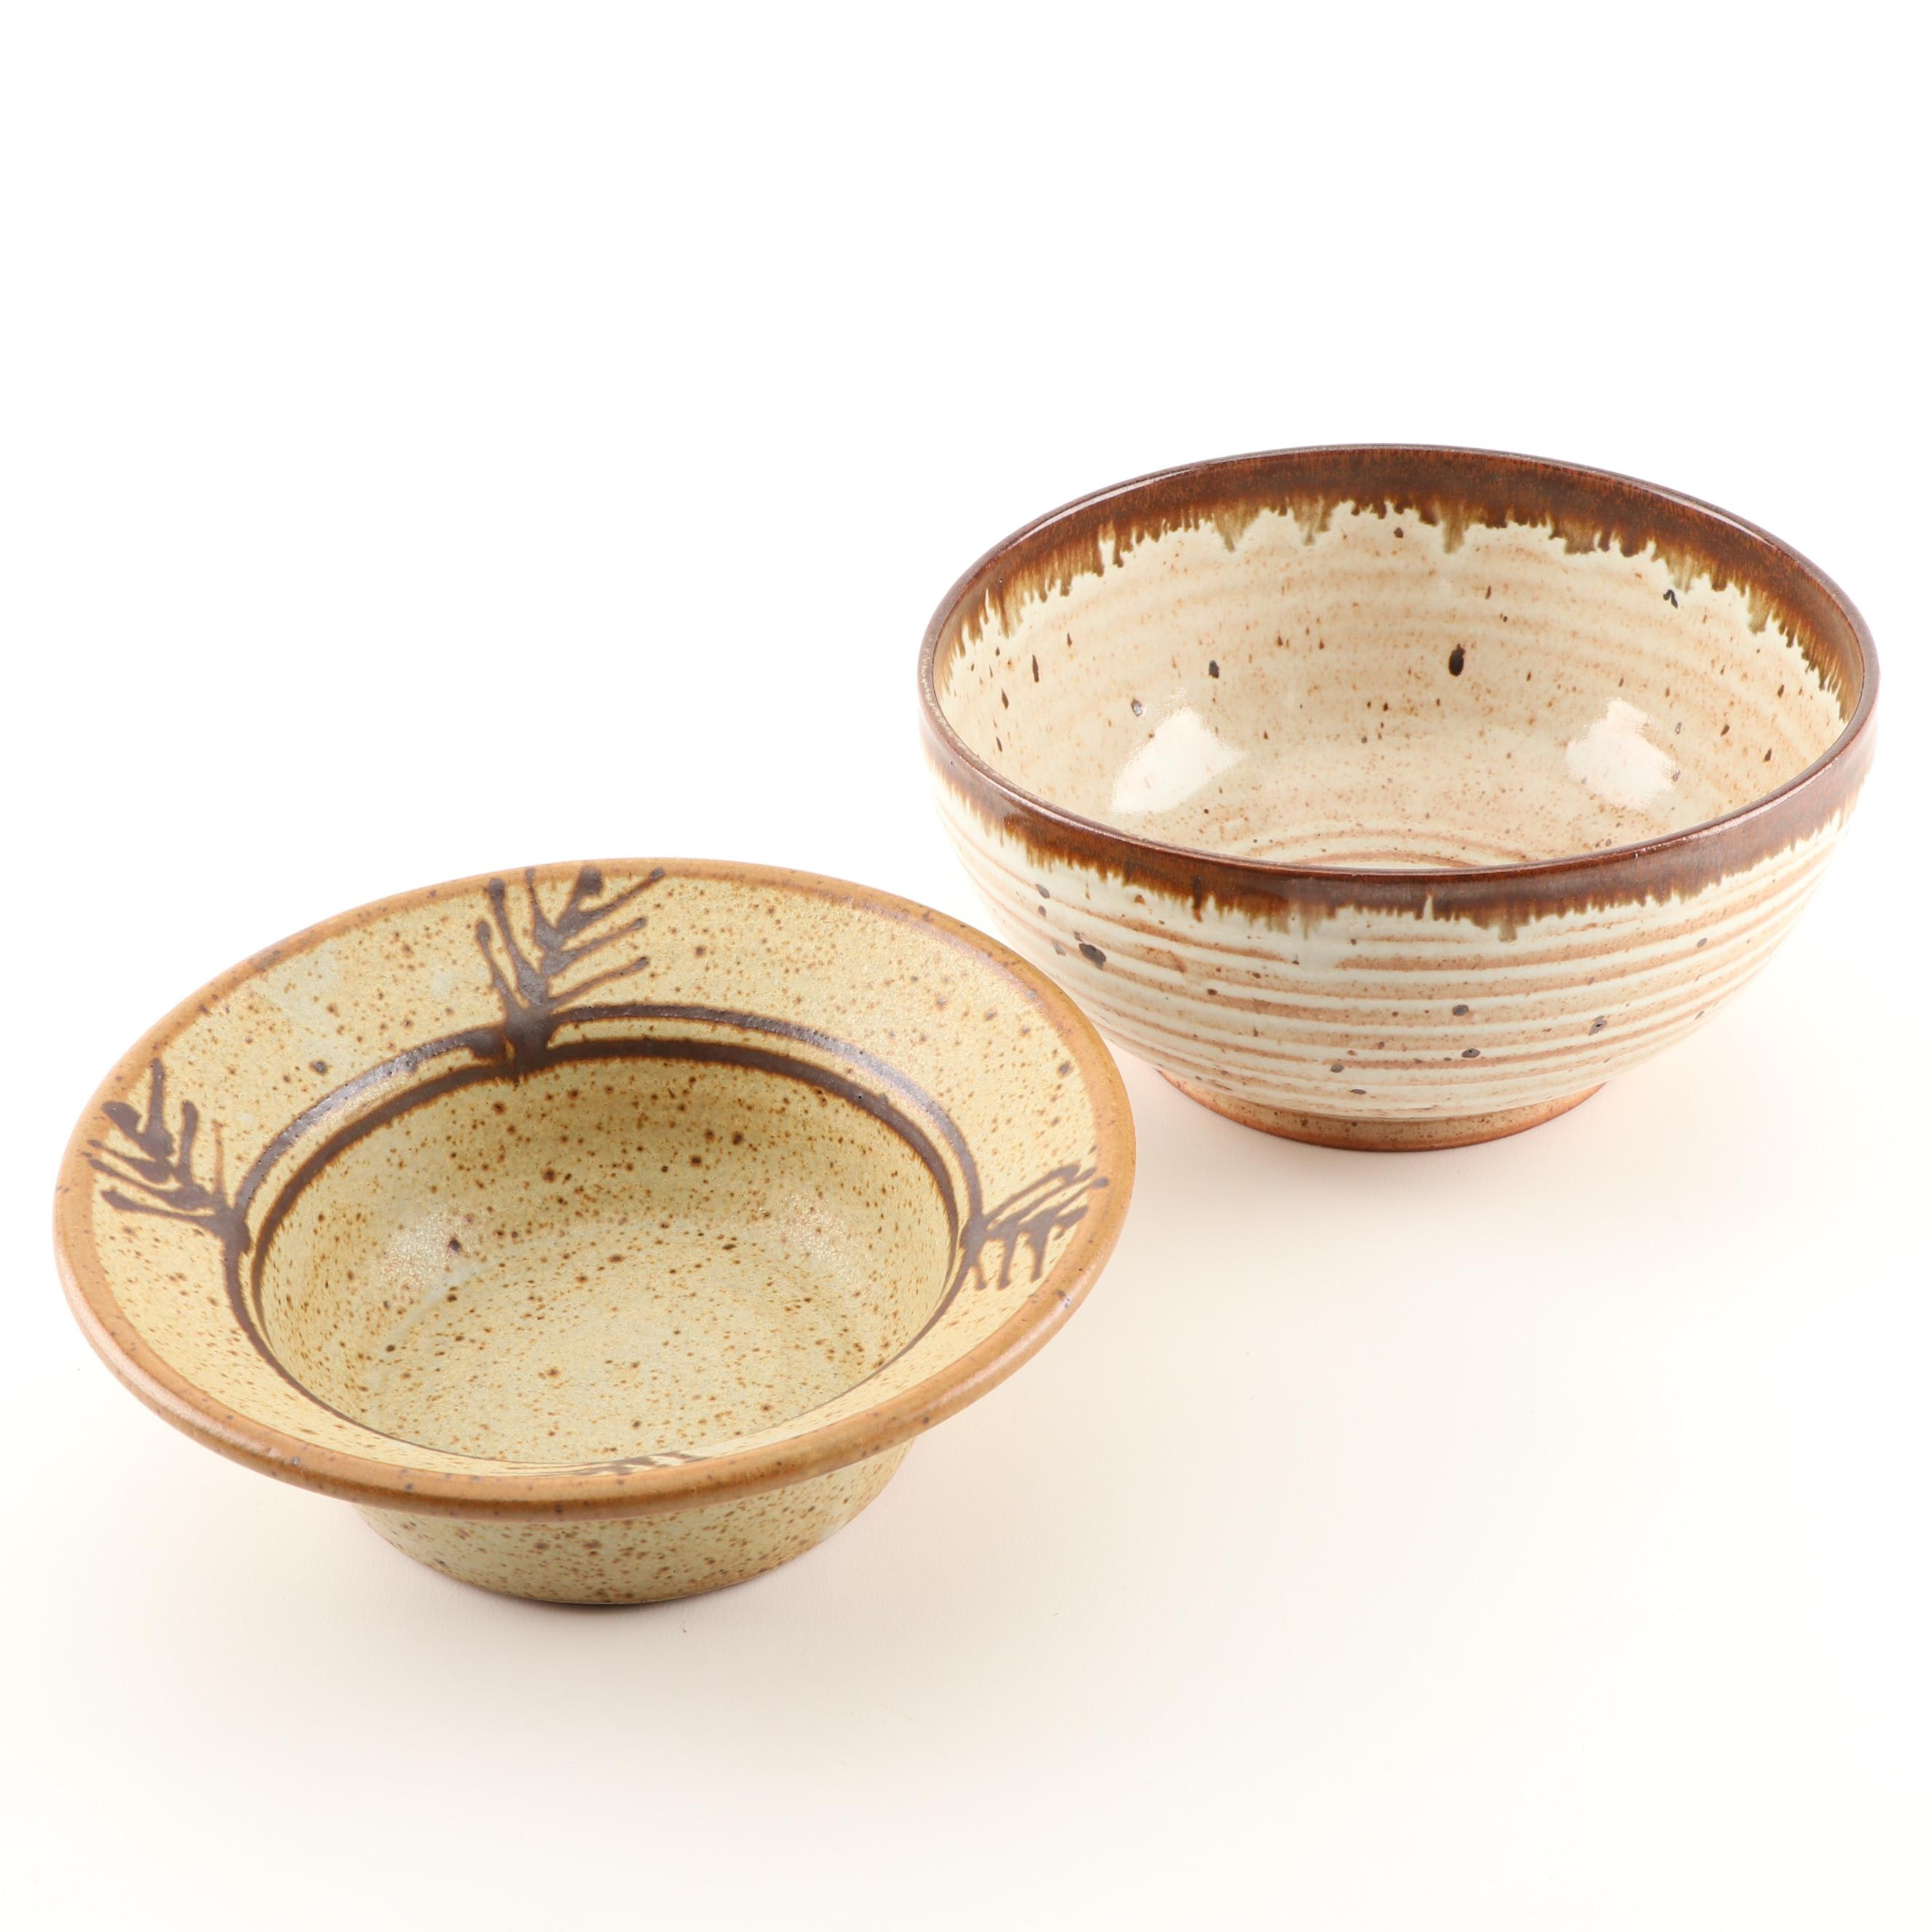 Rick Crown and Magus Wheel Thrown Stoneware Bowls